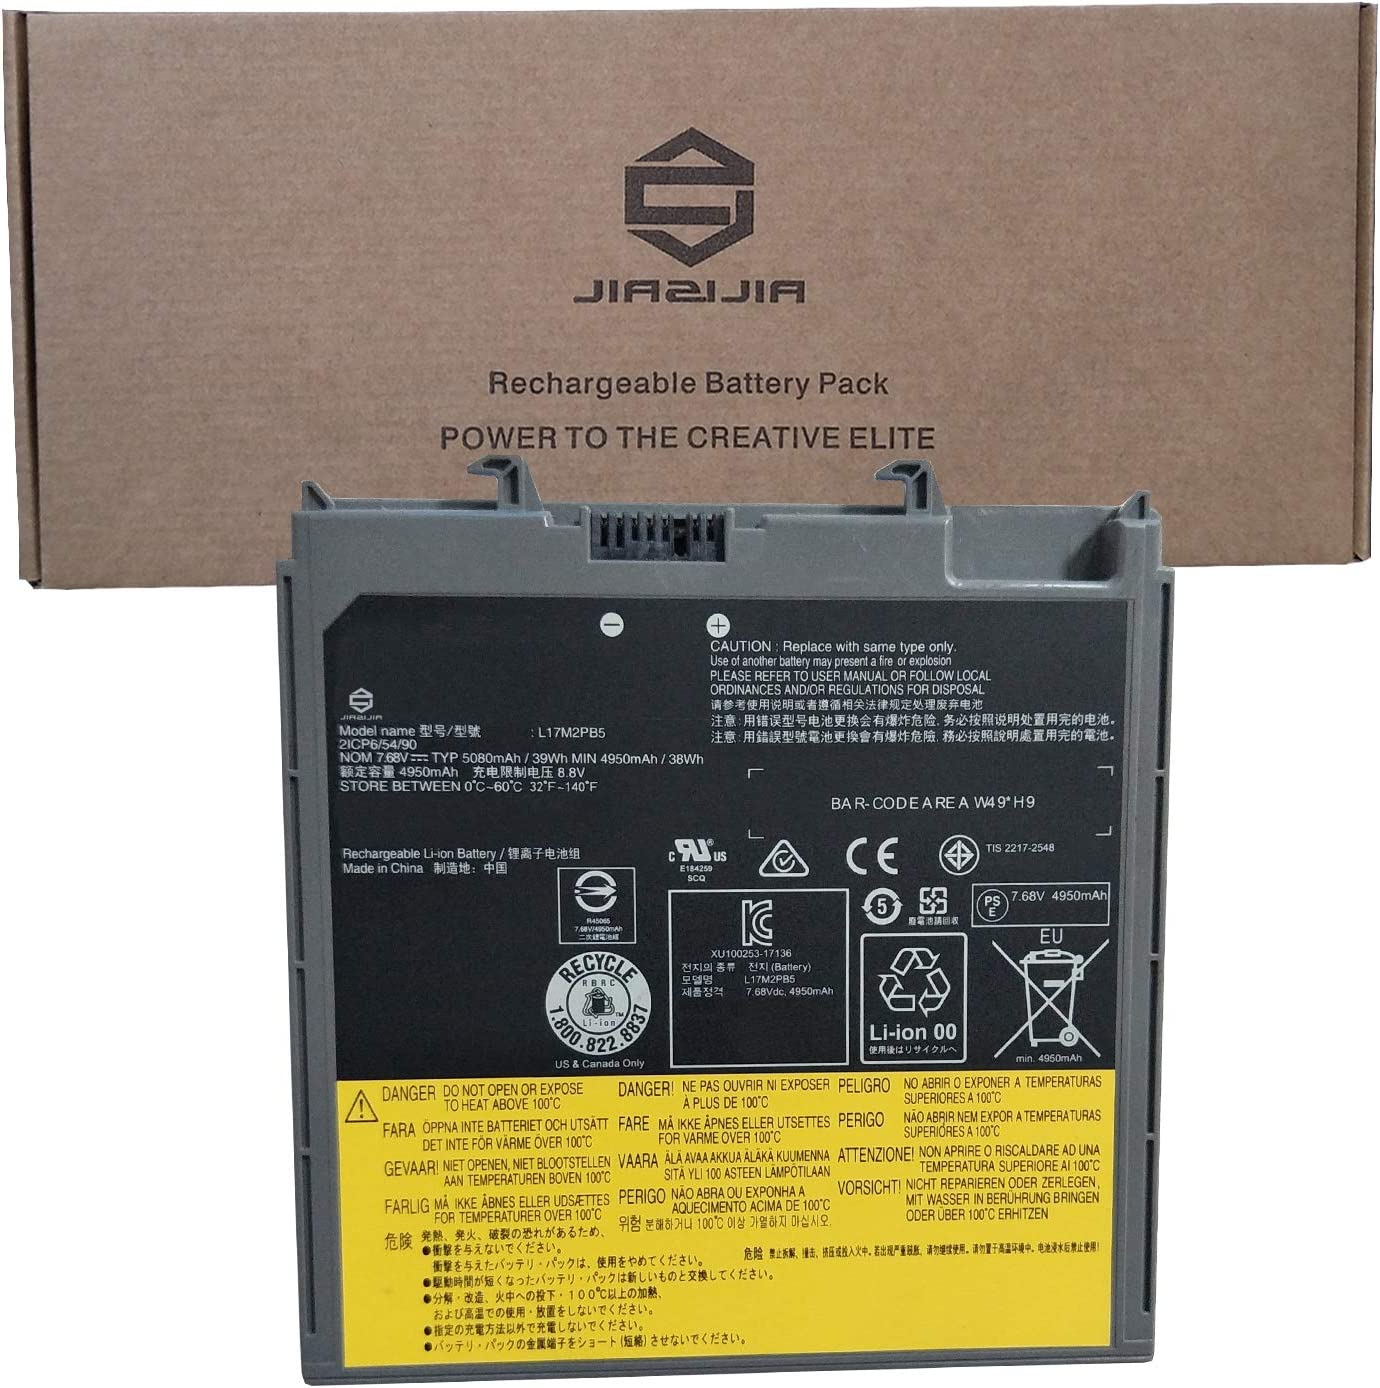 Excellent JIAZIJIA L17M2PB5 Laptop Battery Ranking TOP3 Replacement V330-14A for Lenovo